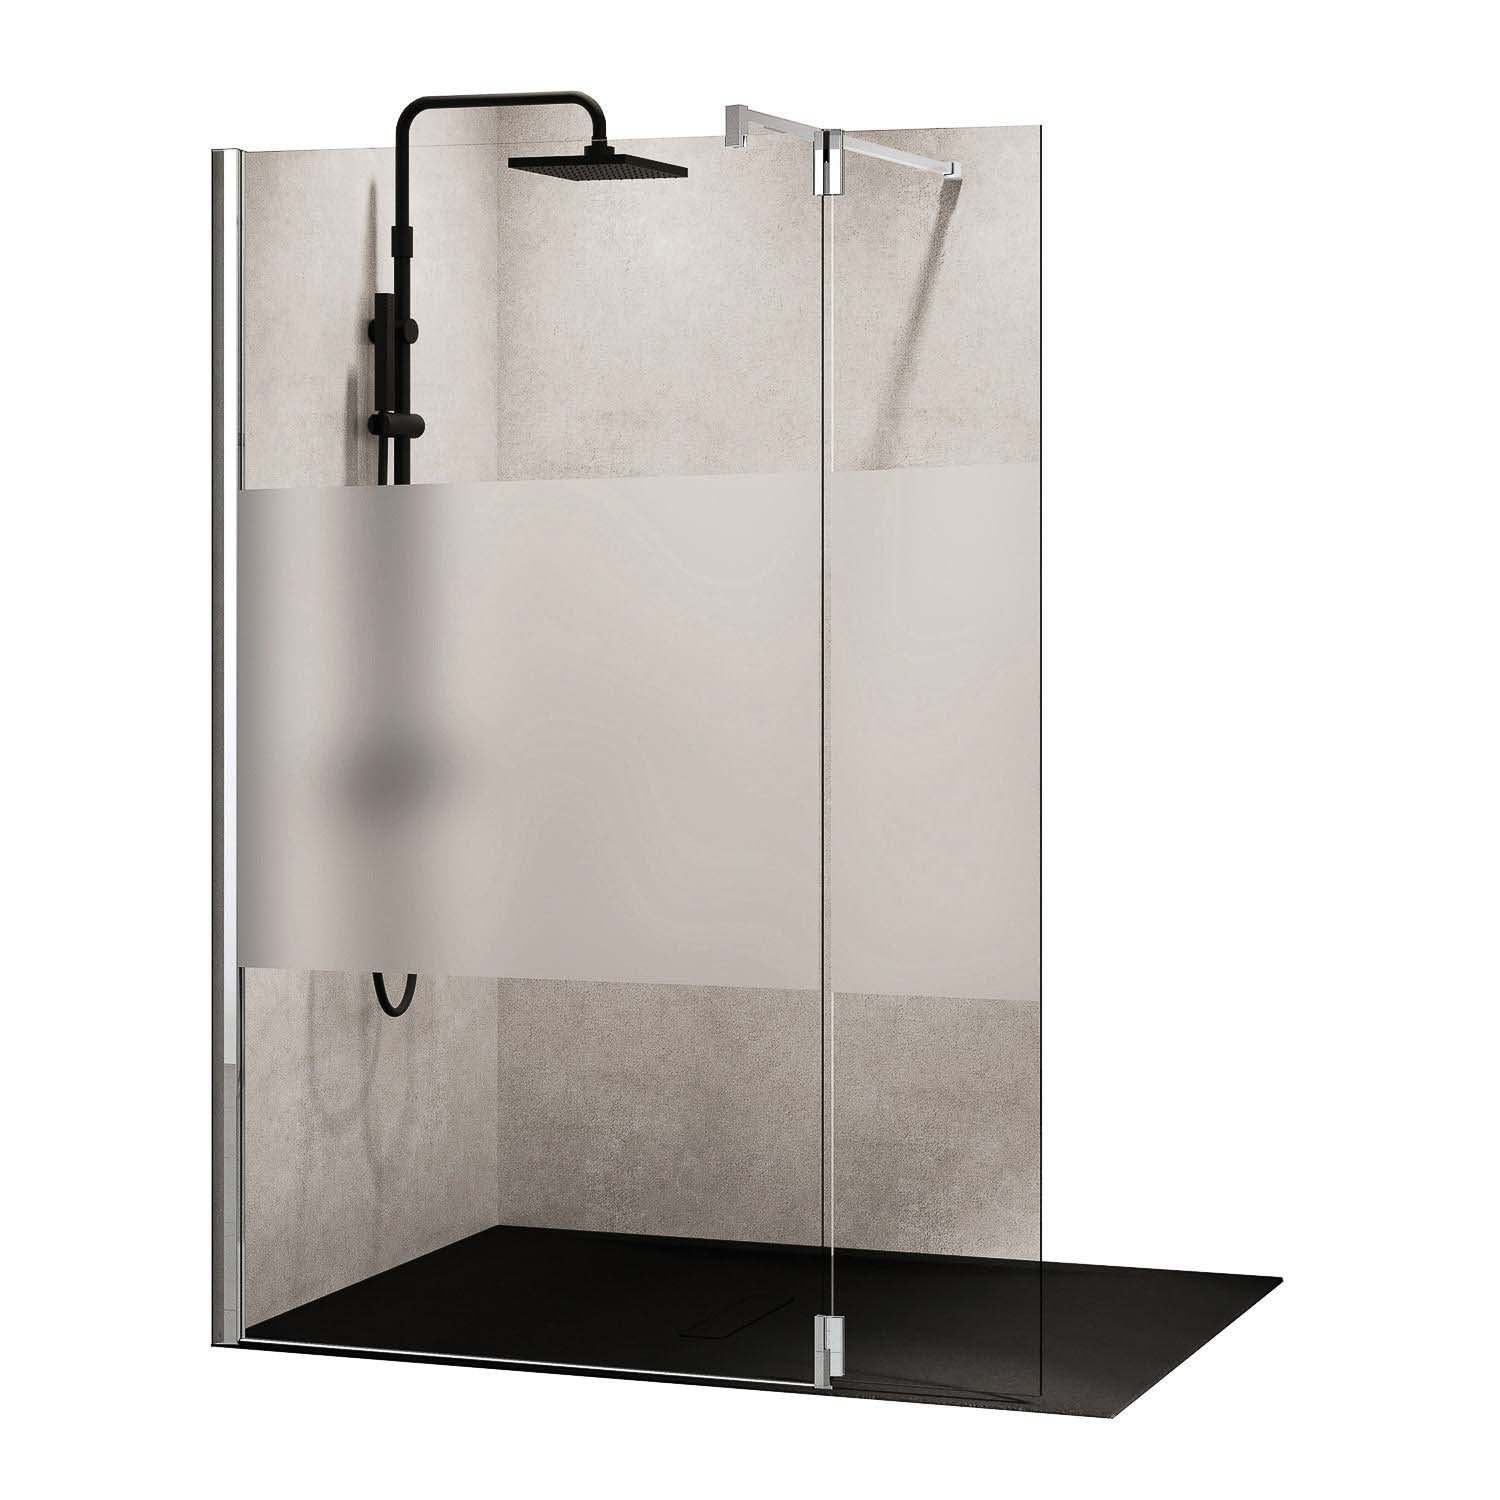 720-750mm Ergo Wet Room Screen Satin Band Glass with a chrome finish on a white background